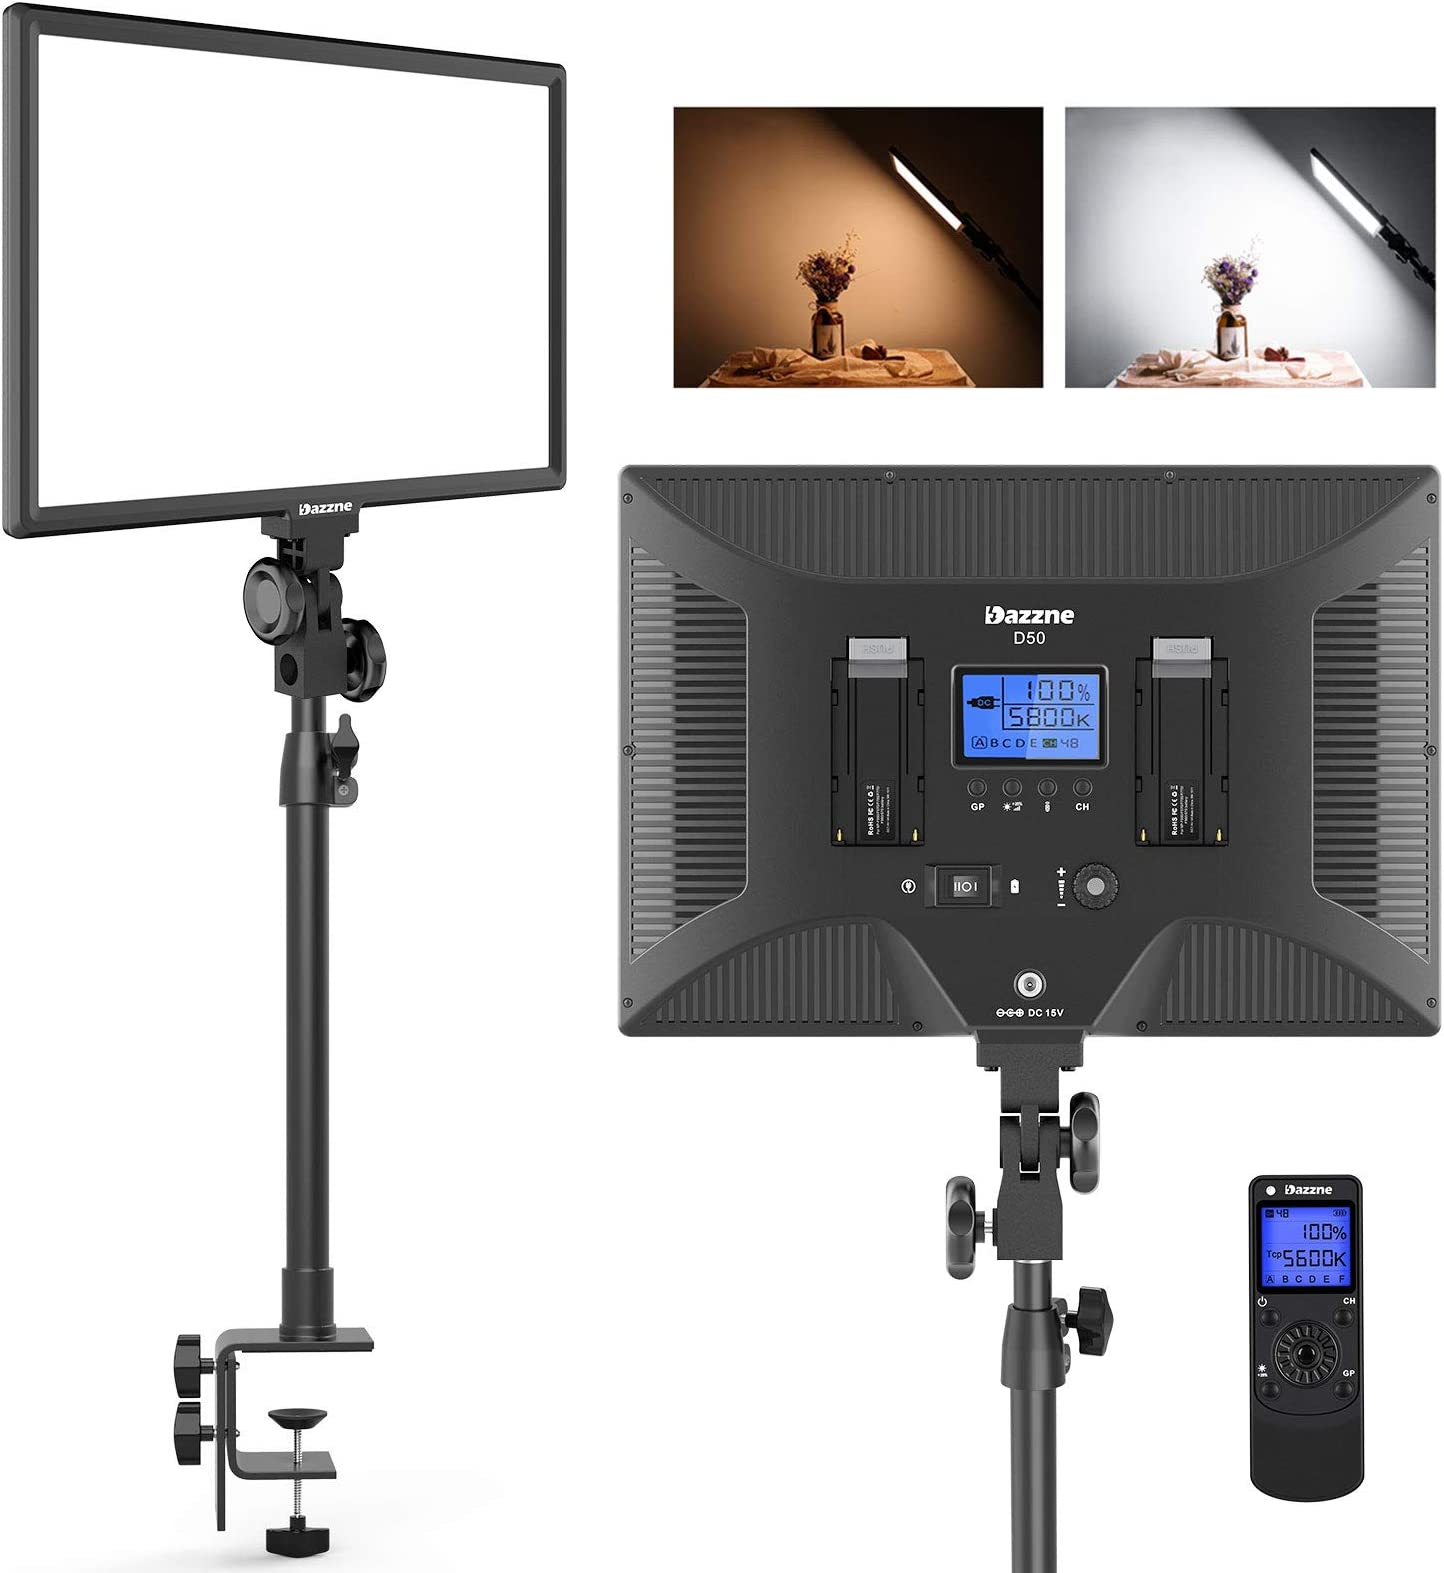 Dazzne D50 Desk Mount Video Light with C-Clamp, LED Studio Photography Light with Wireless Remote, 15.4 Inches 45W 3000K-8000K 3600LM Dimmable 0-100% for Video Conference Tiktok Live/Game Streaming